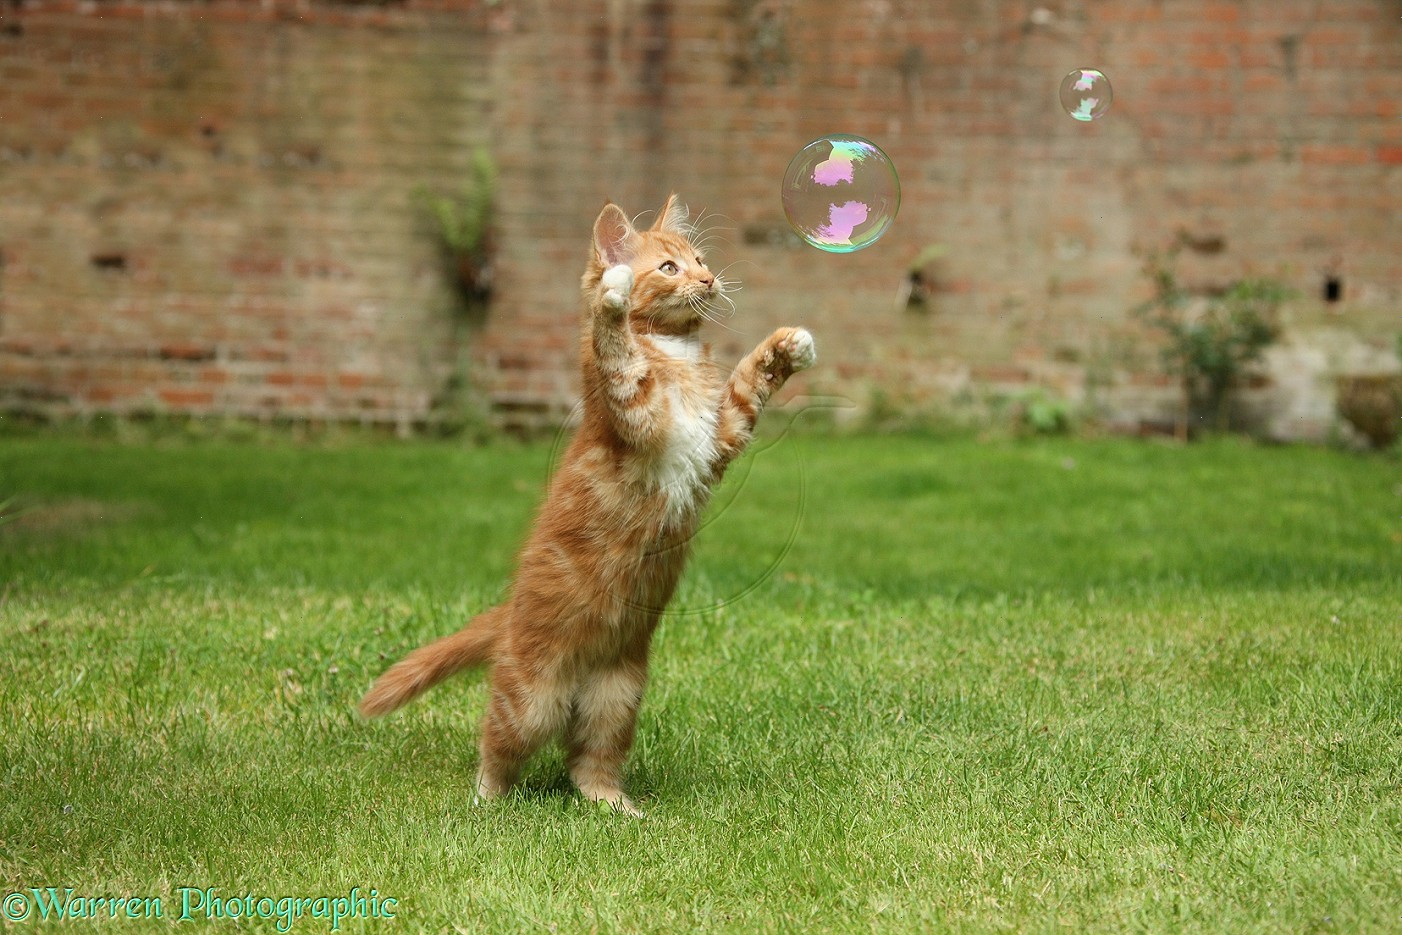 26627-Ginger-kitten-swiping-at-a-soap-bubble